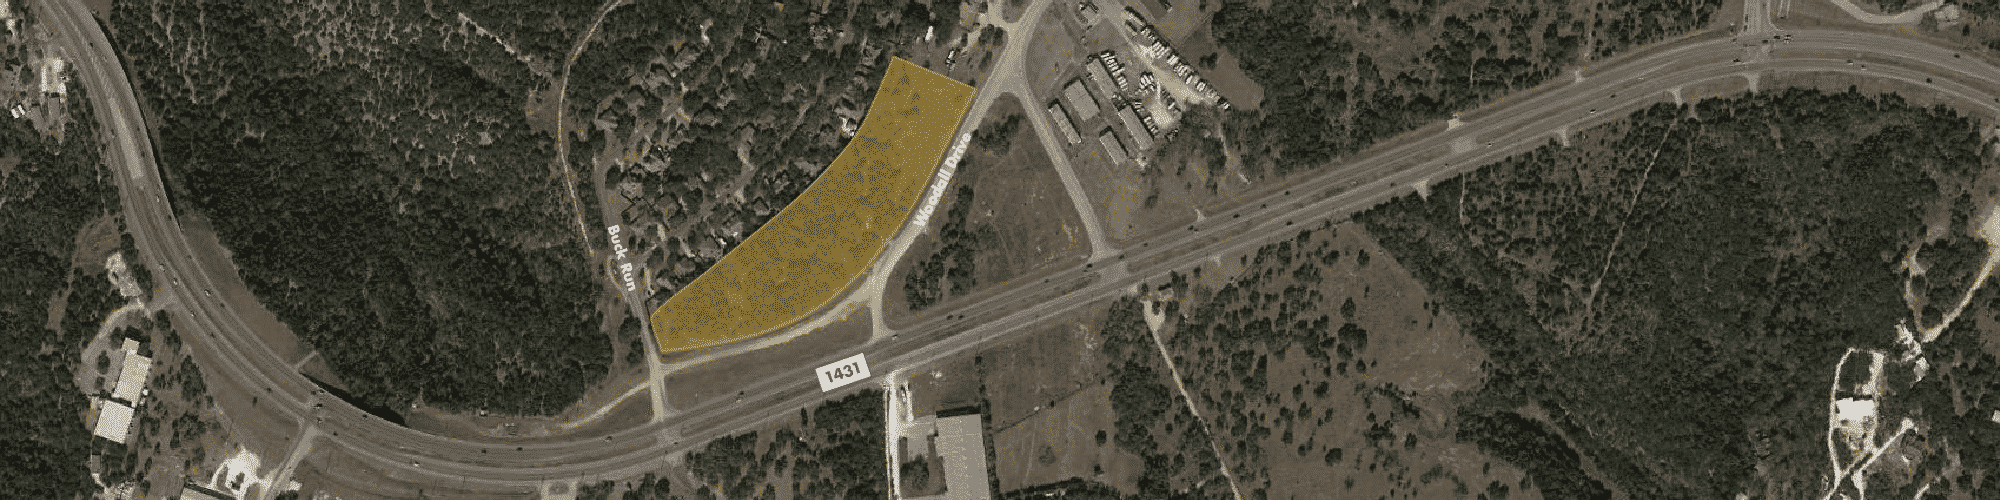 Cedar Park West Land | NEC of Buck Run & Whitestone Blvd